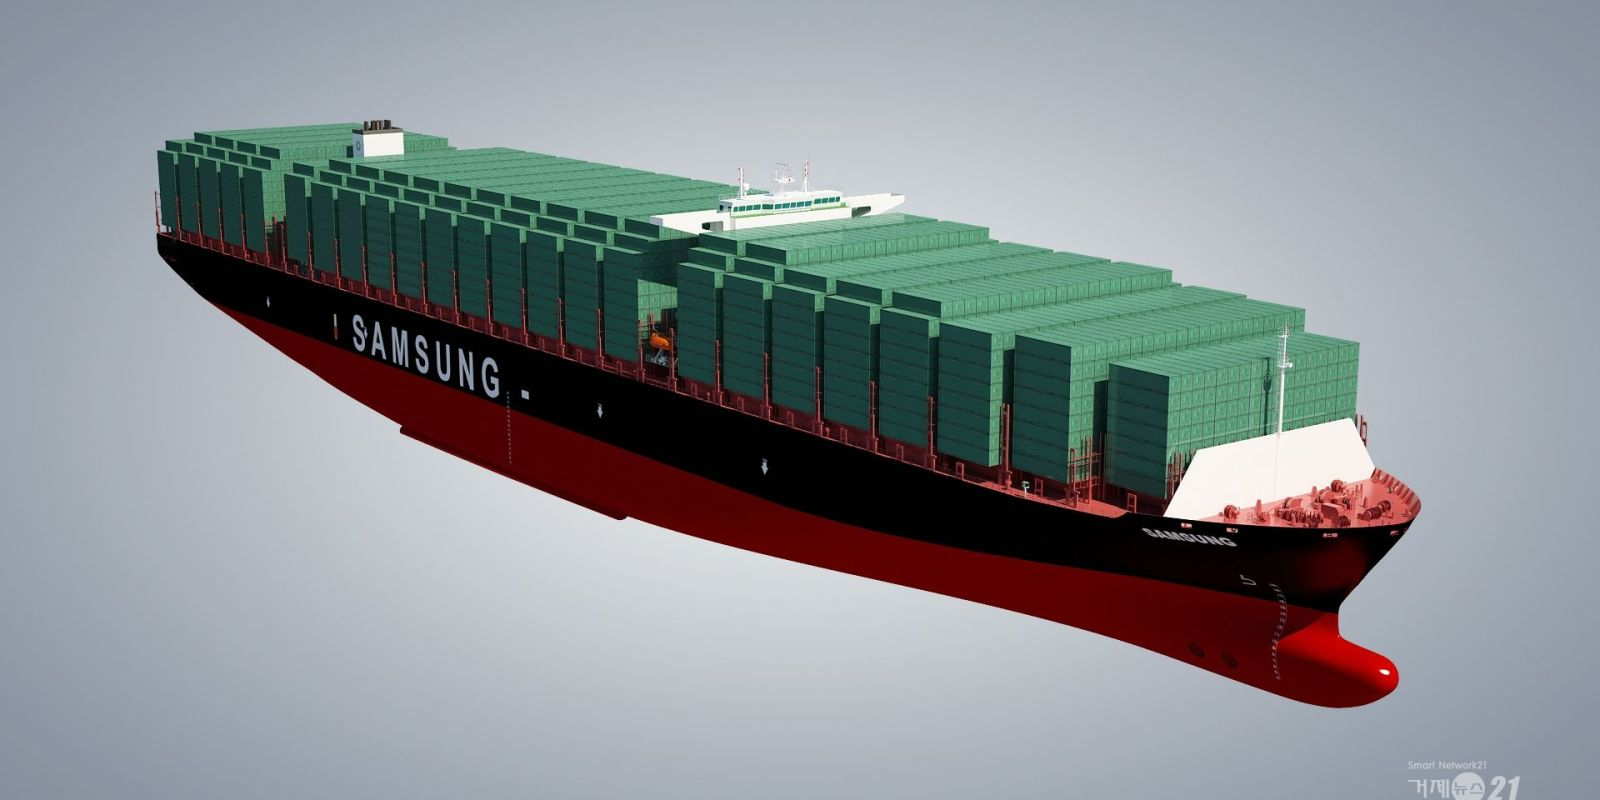 Samsung Is Building the Largest Cargo Ship in the World